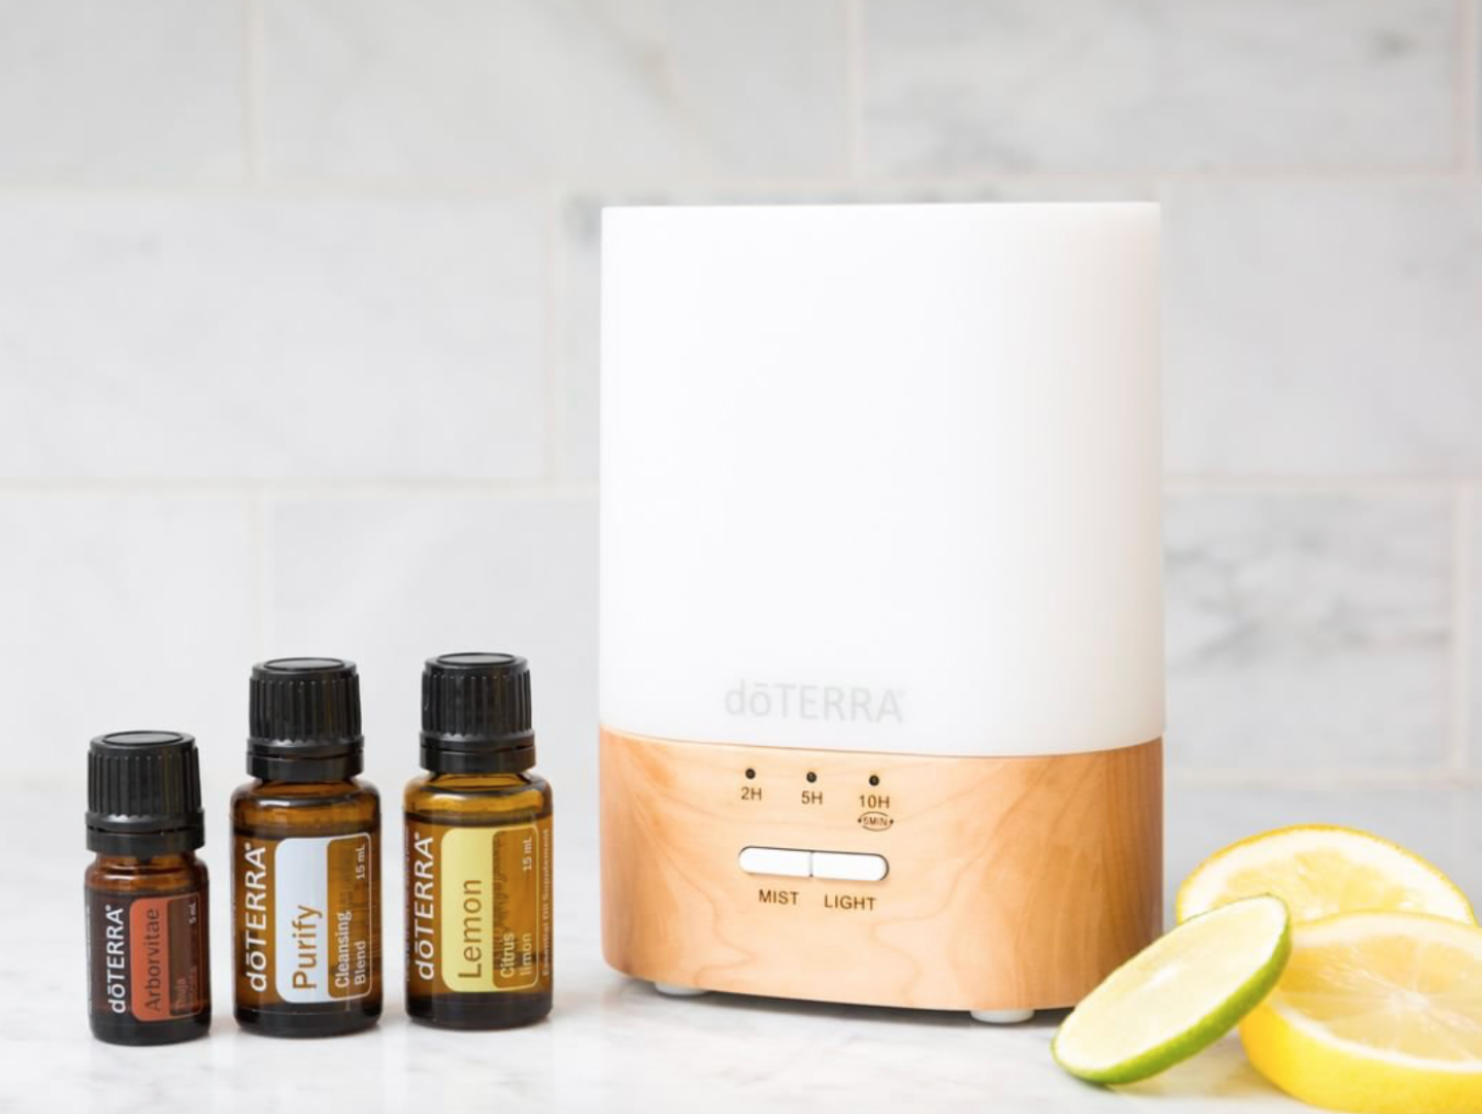 diffuser guide - You've likely seen me share over on Instagram some of my fave combinations to put in the diffuser. Here they are all in one place.